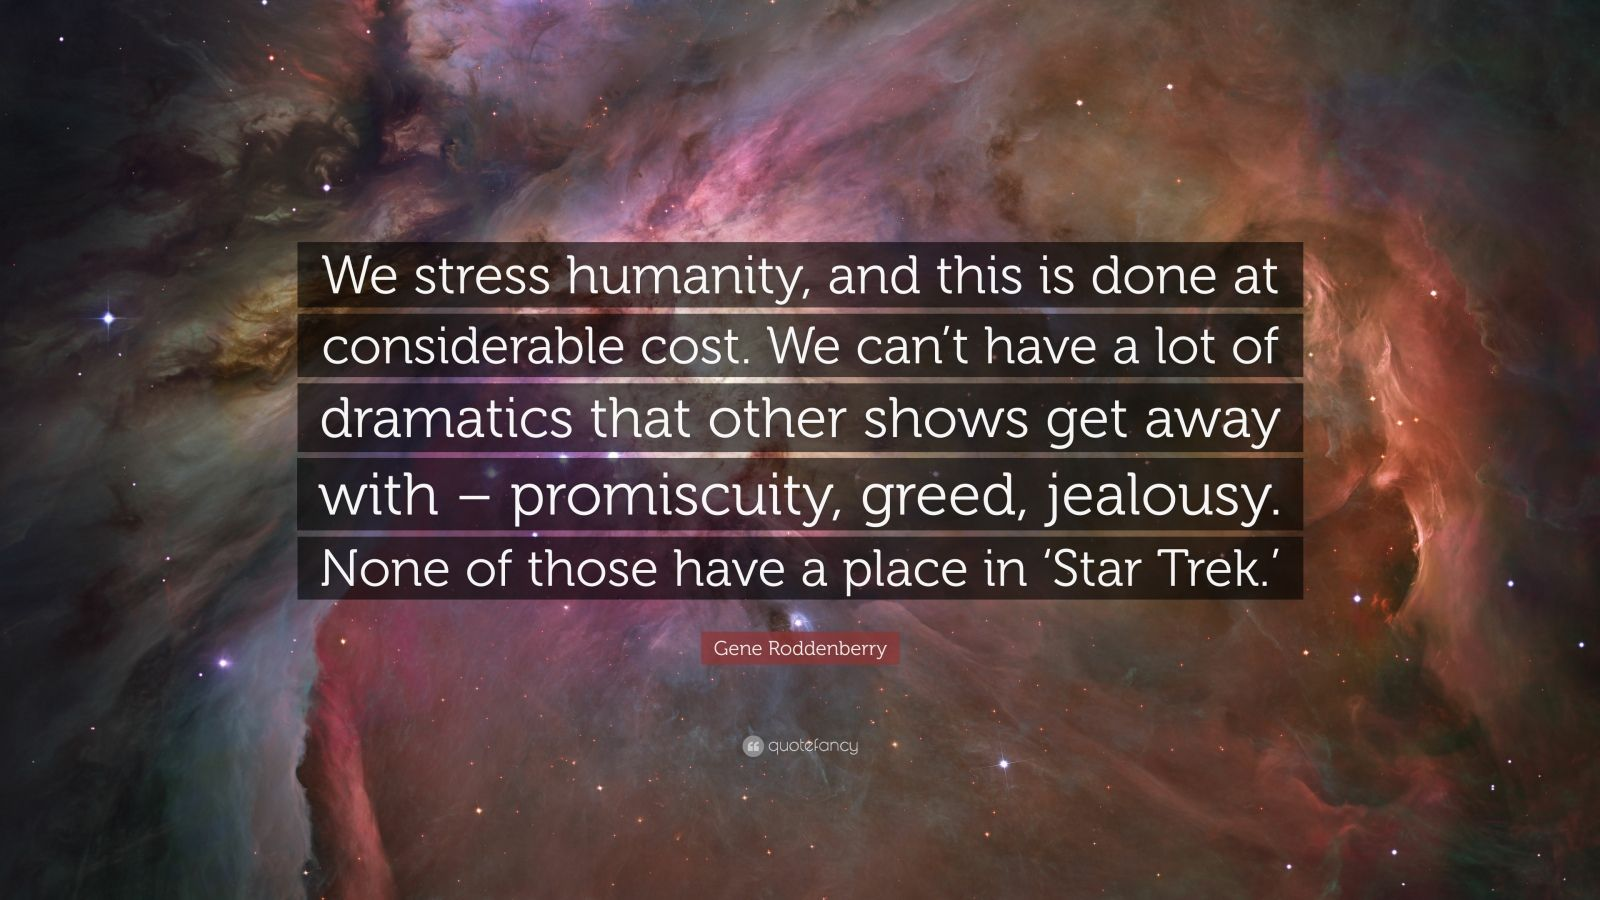 """Gene Roddenberry Quote: """"We stress humanity, and this is done at considerable cost. We can't have a lot of dramatics that other shows get away with – promiscuity, greed, jealousy. None of those have a place in 'Star Trek.'"""""""